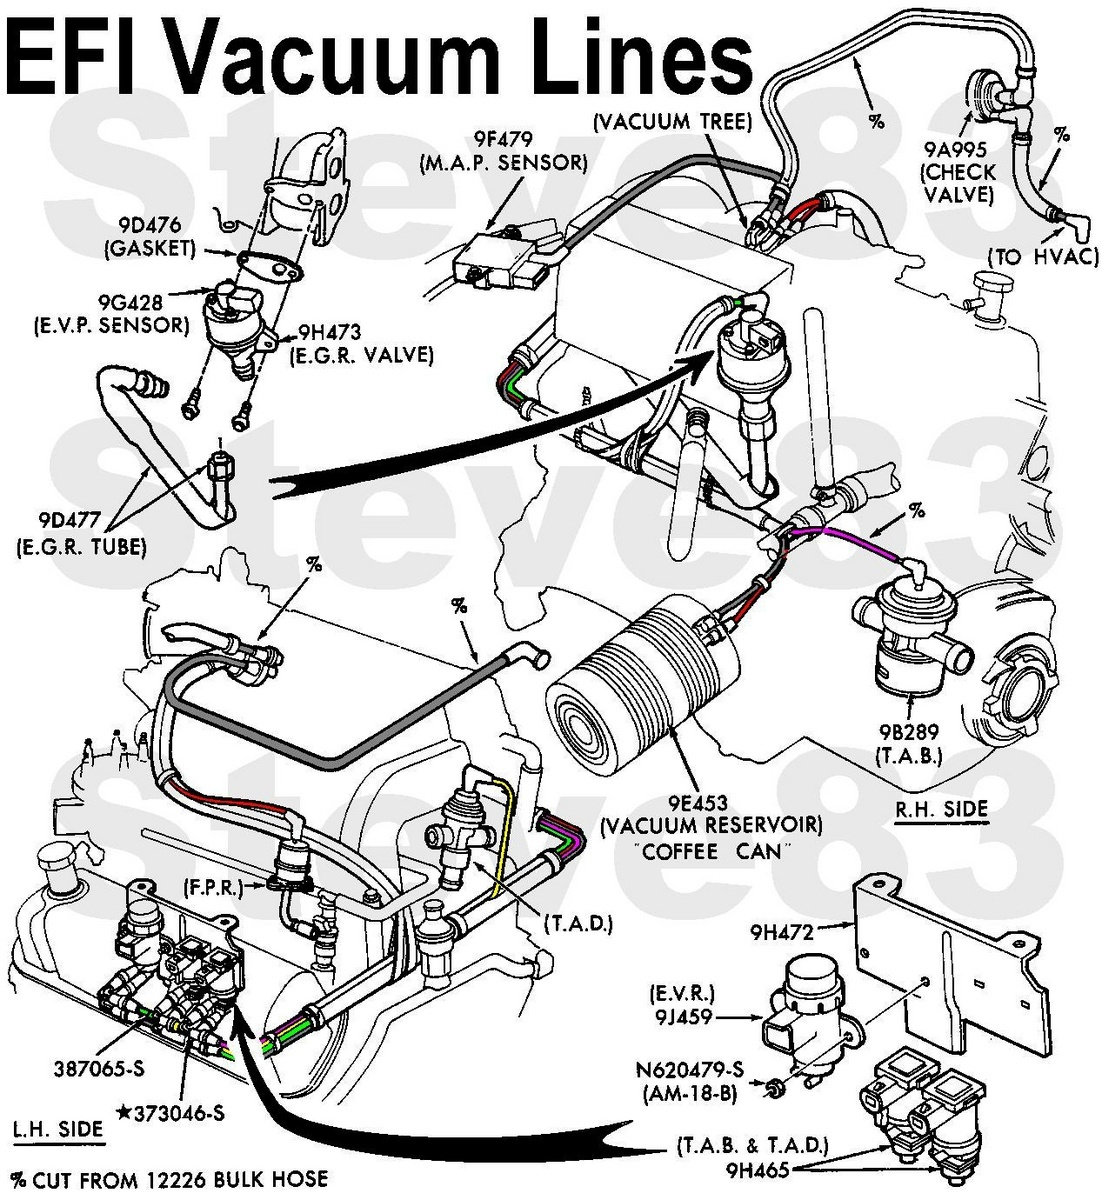 ford f 150 questions is there a diagram for vacuum hoses on 1990 rh cargurus com 1987 Ford F-150 Engine Diagram 1994 Ford F-150 Engine Diagram